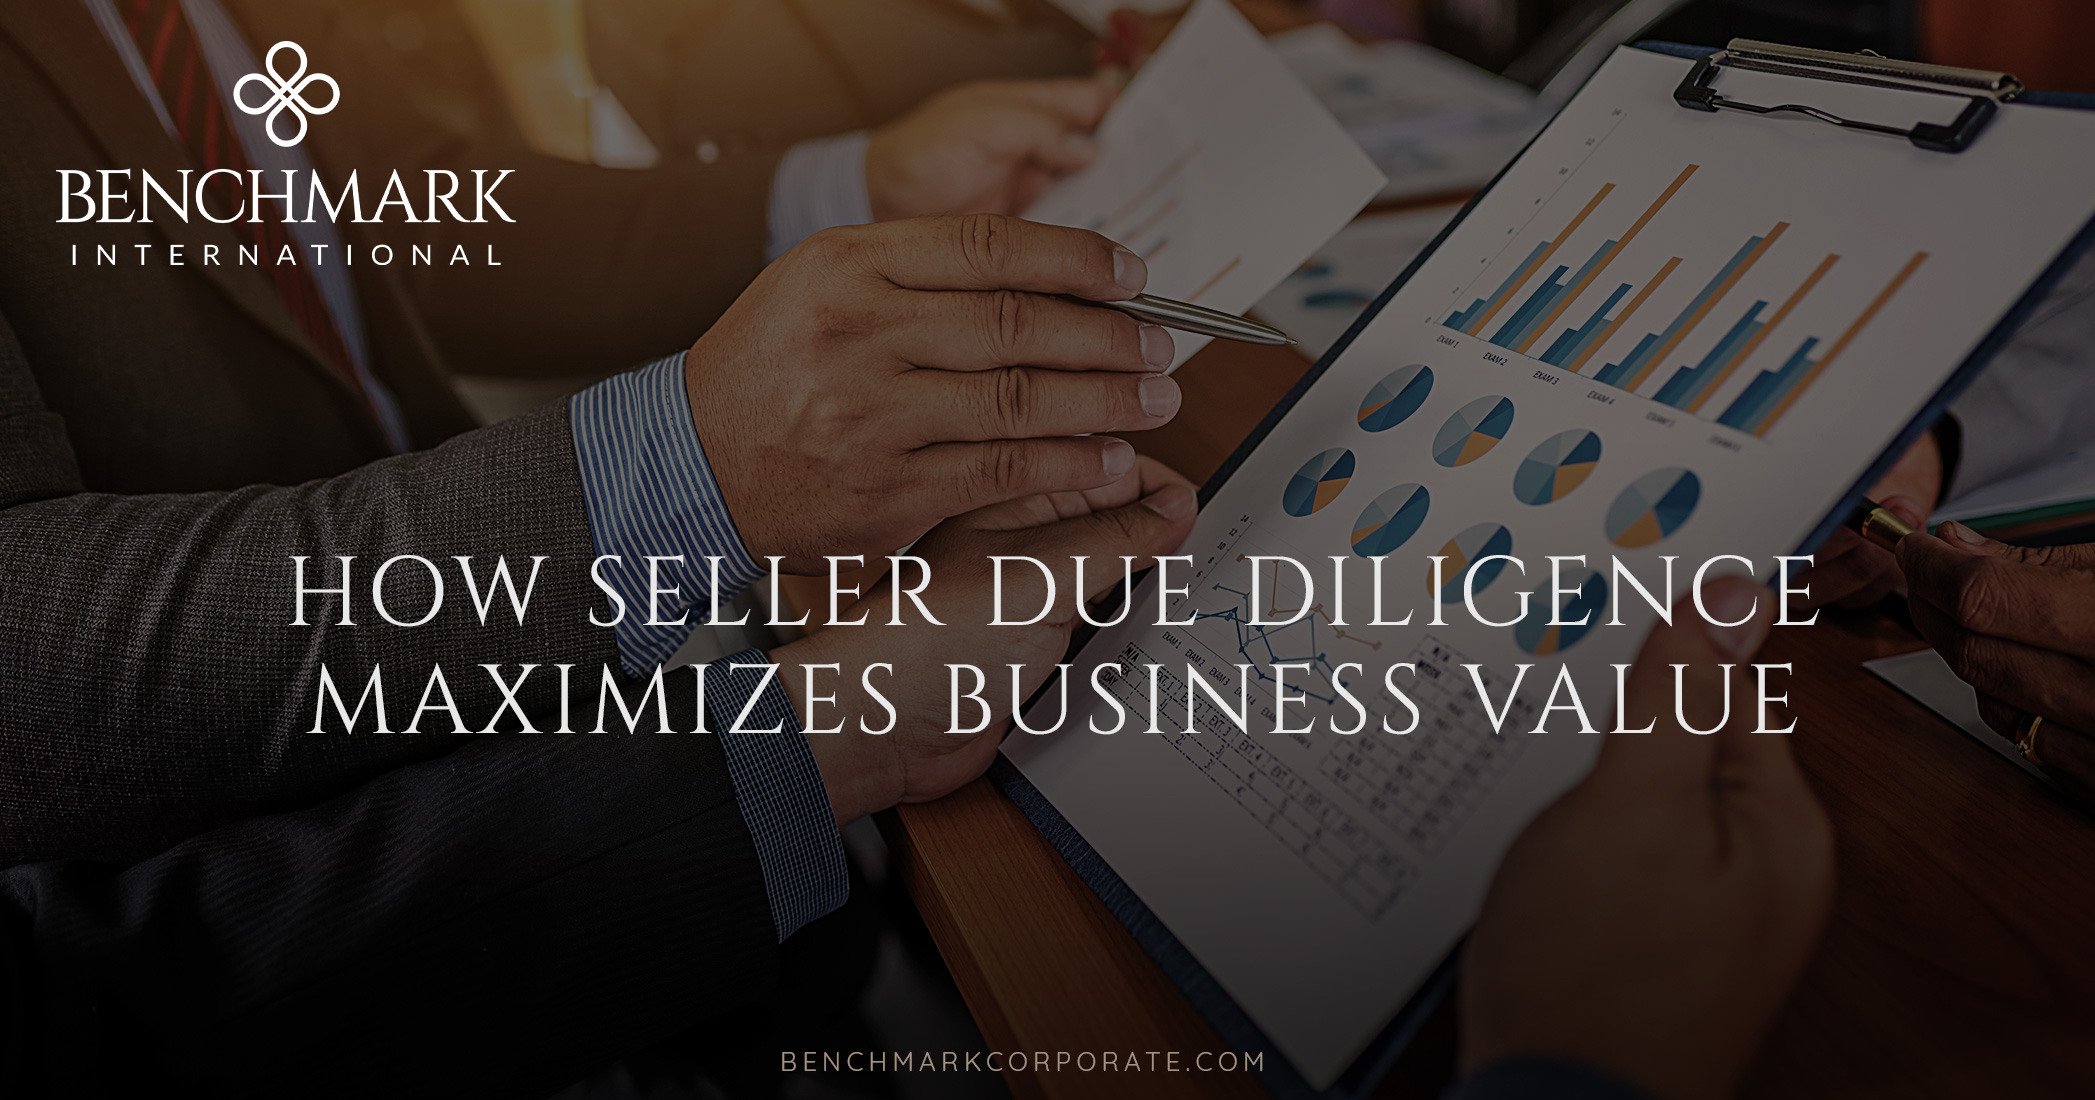 How Seller Due Diligence Maximizes Business Value